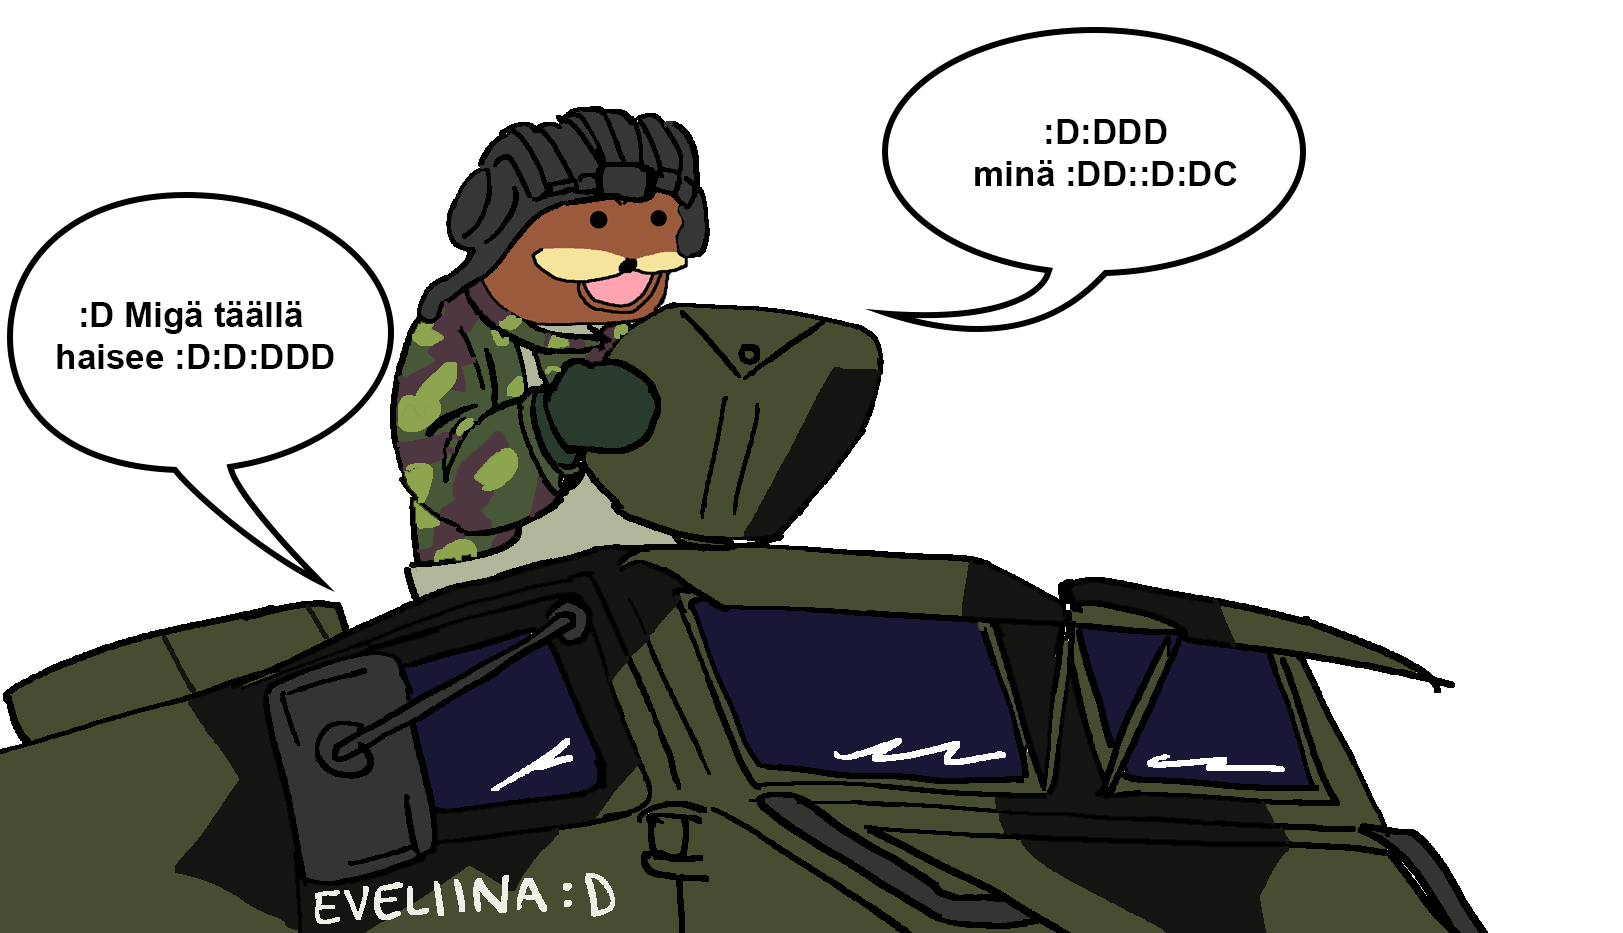 A meme in which Gorporal Spurdo is looking out of a tank with the conversation: Migä täällä haisee - minä